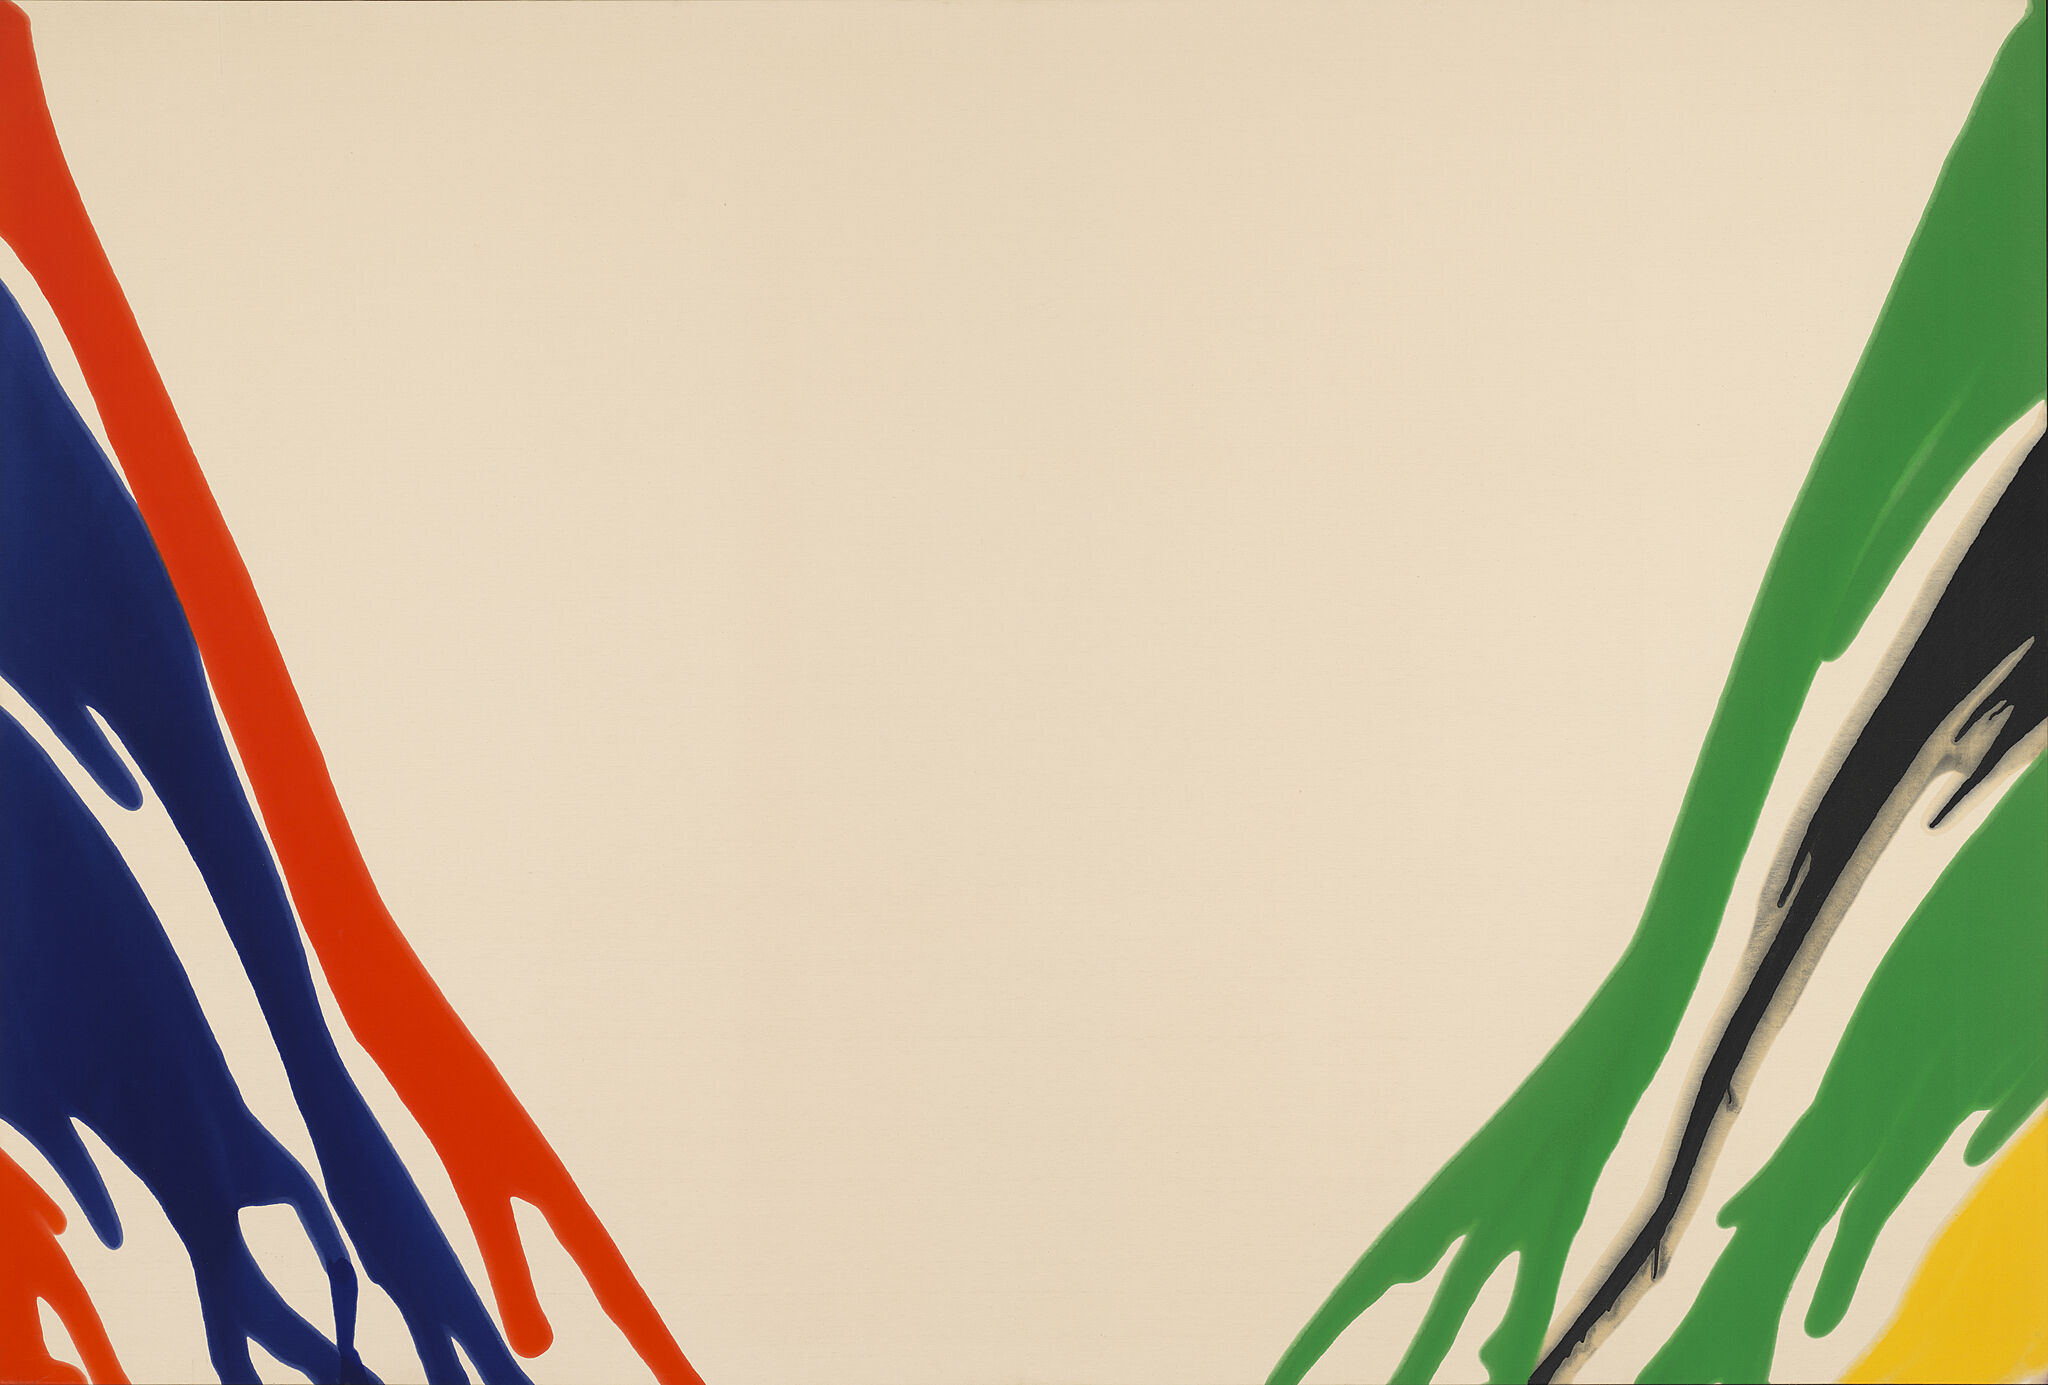 Abstract painting with blue and red paint on the left side and green, black, and yellow paint on the run, running towards the bottom center of the canvas.